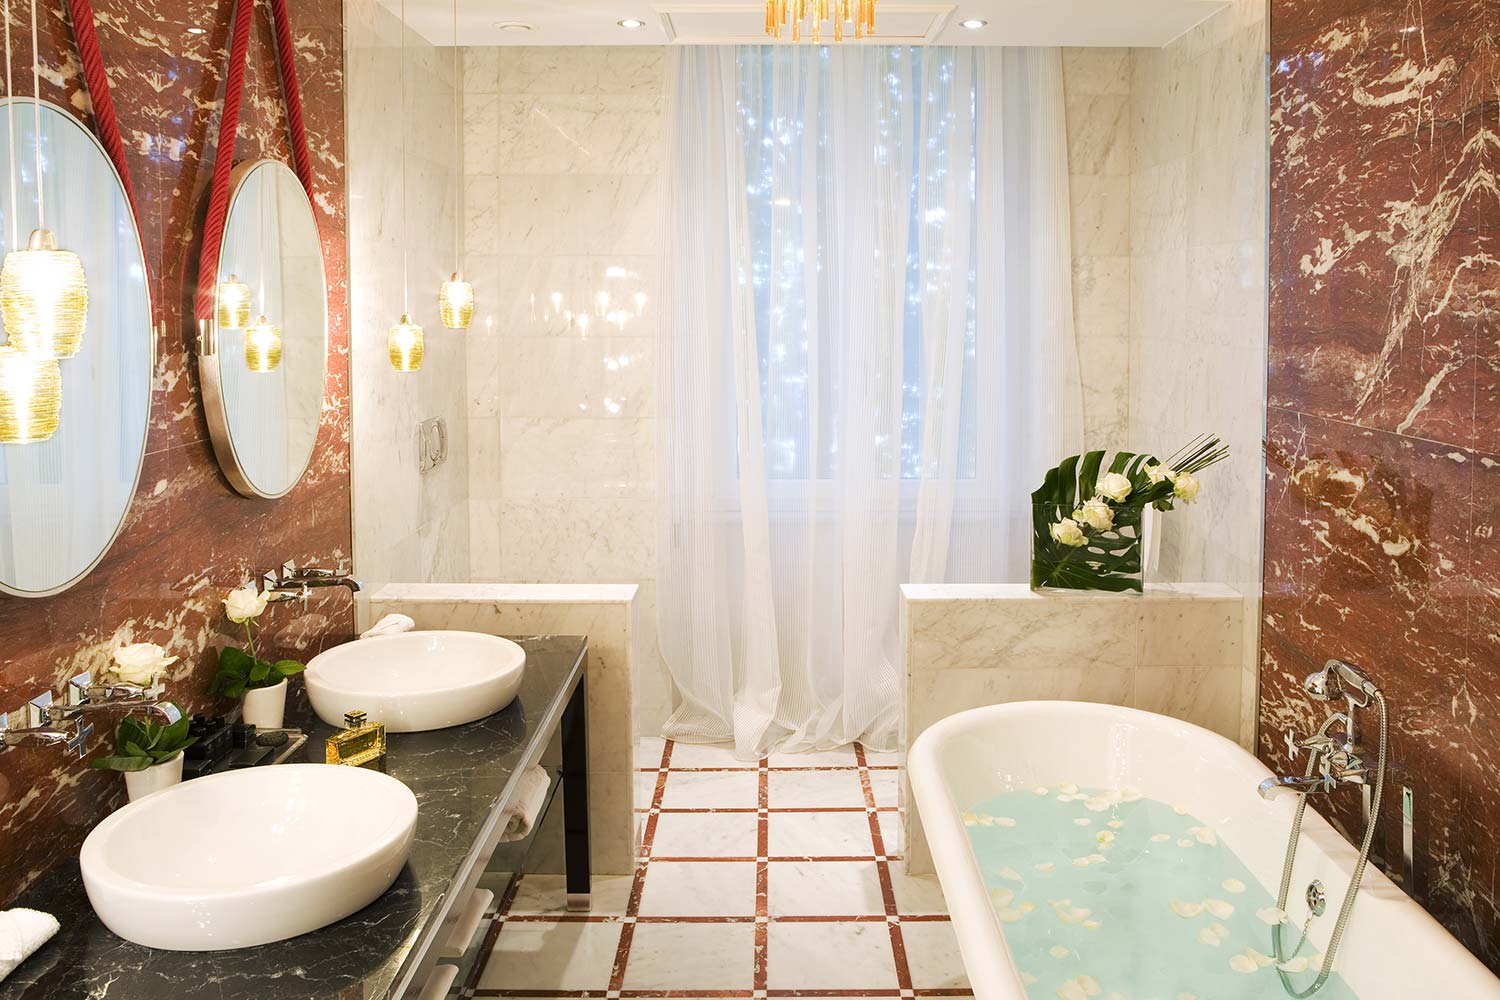 7_Regina_Hotel_Baglioni_Suite_Bathroom